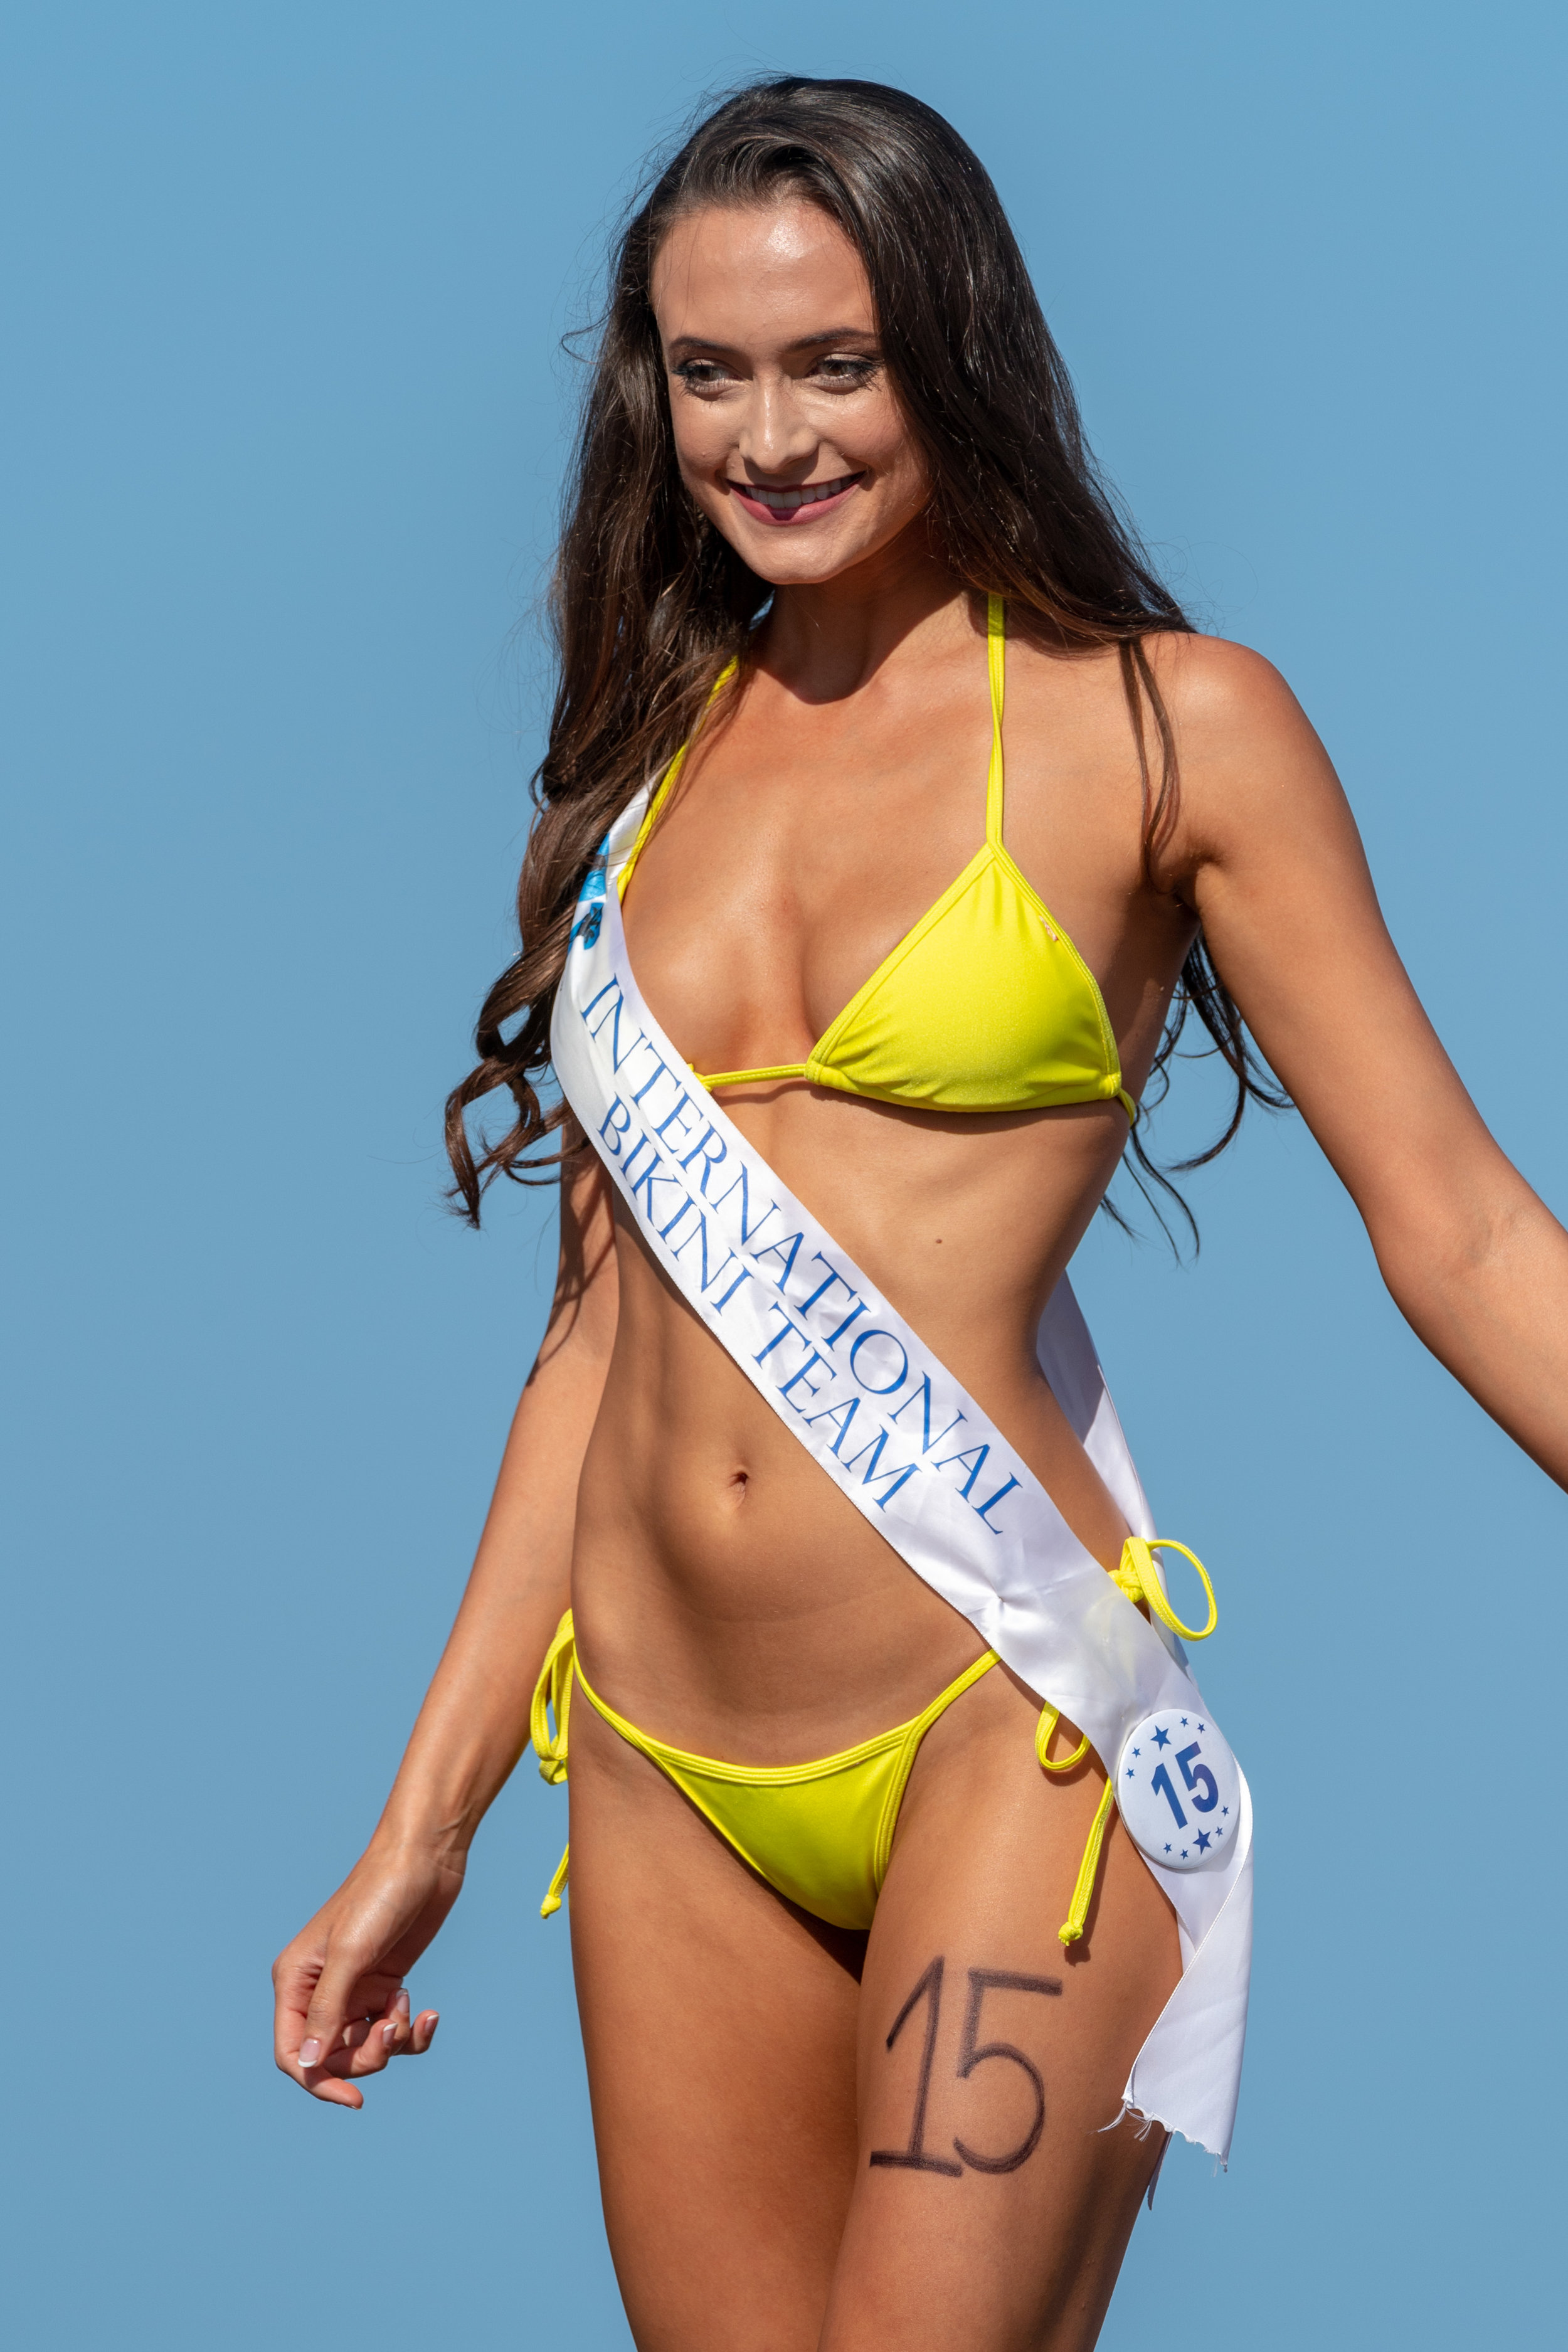 Final round of the 2018 Coastal Edge Miss ECSC Pageant presented by Pacifico Beer DoctorStonersVodka ALT 105.3 Chesapeake Bay Distillery iHeartRadio Virginia Beach Nightlife International Bikini Team 